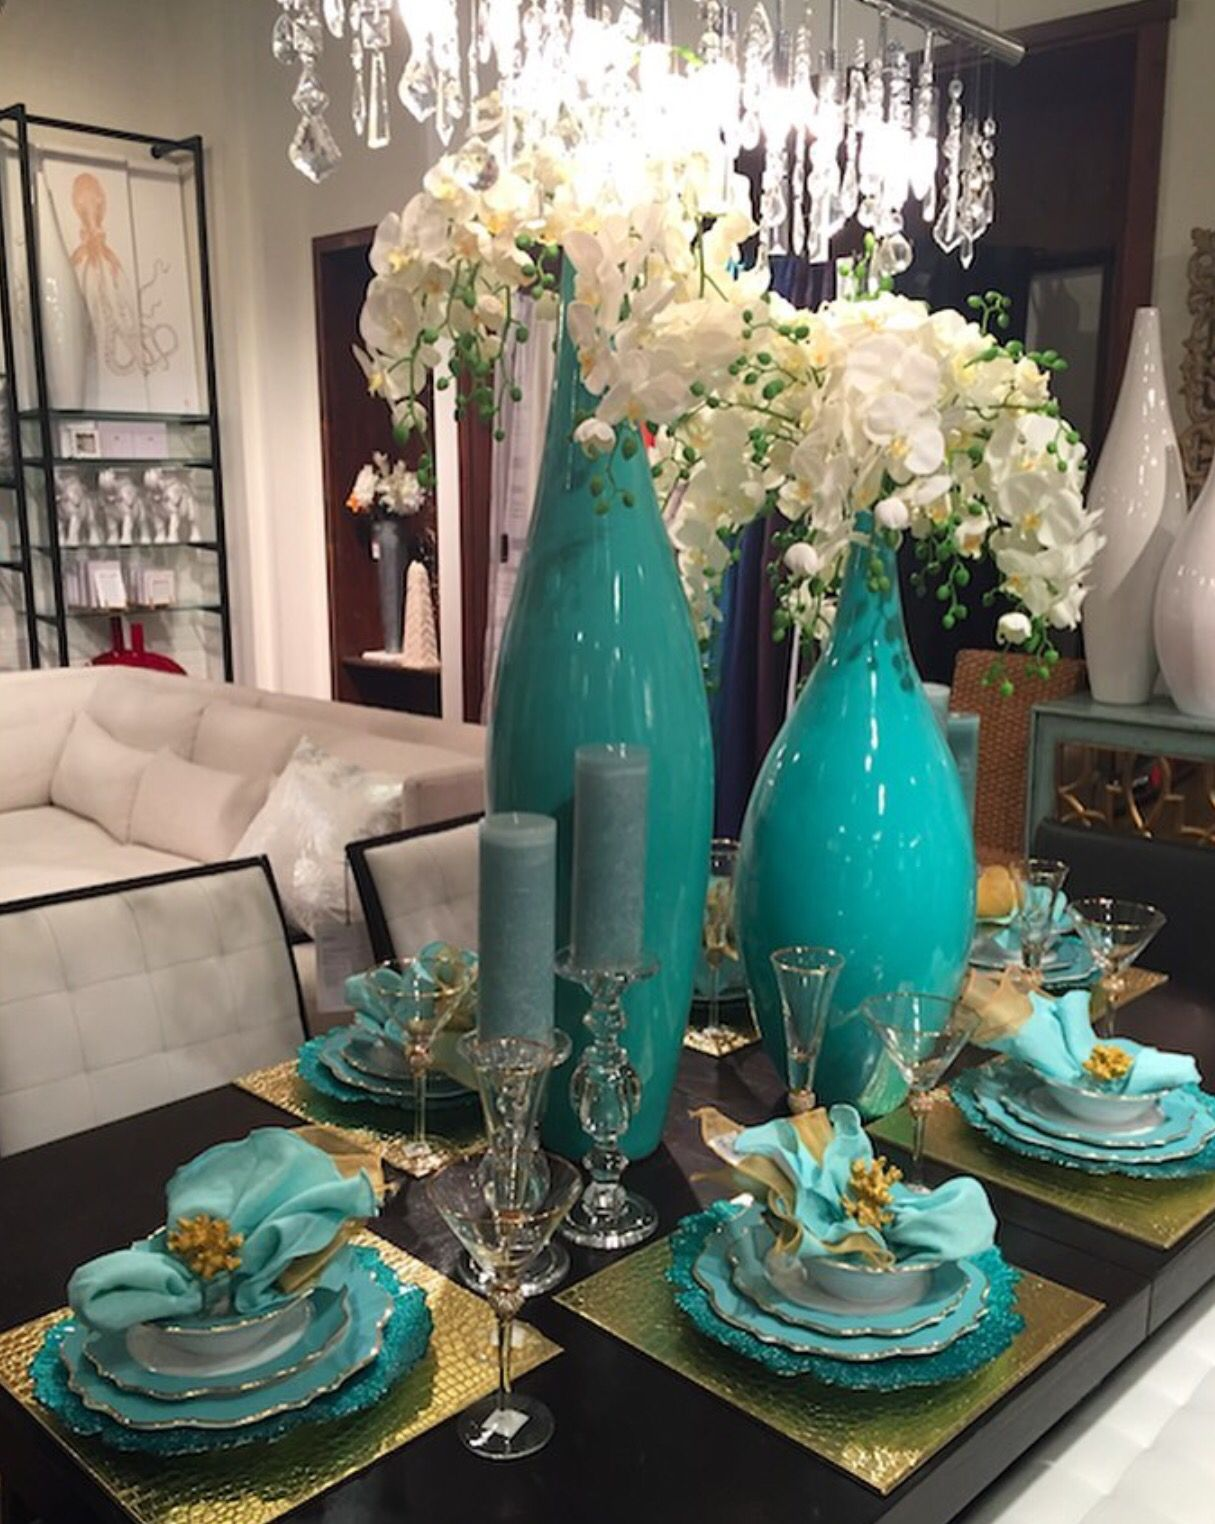 Turquoise Vases With White Orchids Amazing Centerpiece Dining Room Table Decor Dinning Table Decor Dining Table Decor